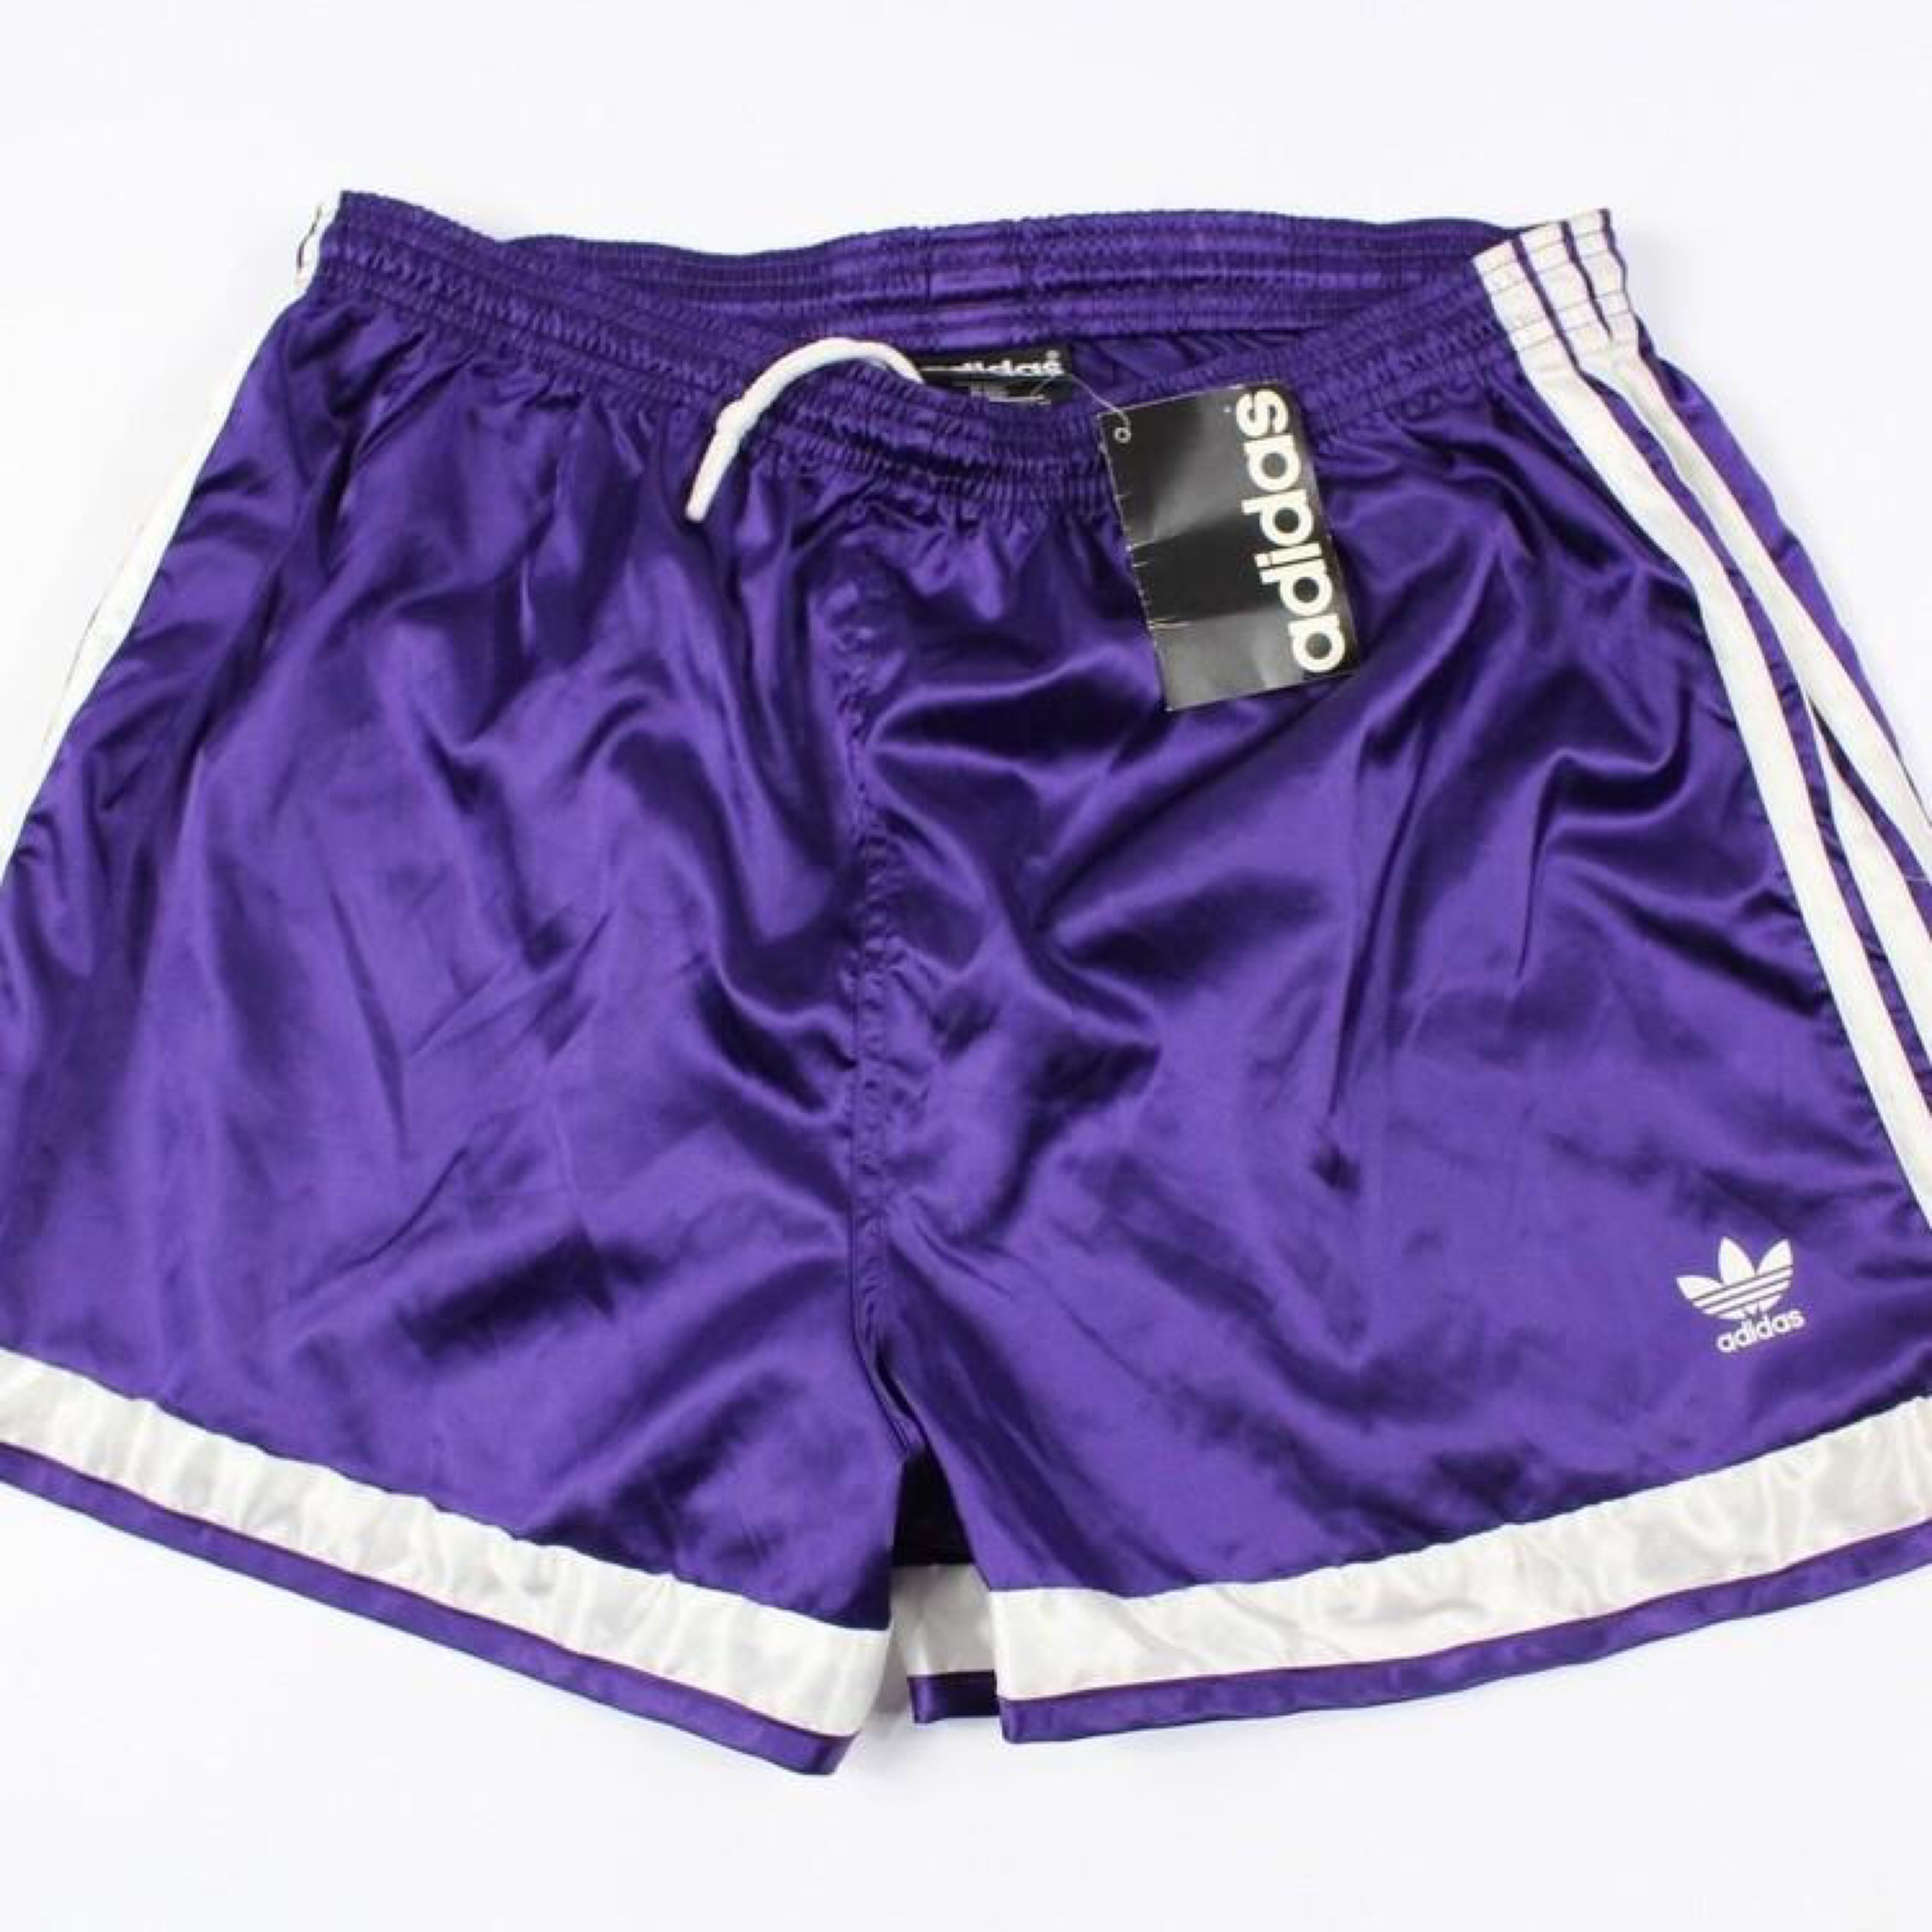 Vintage Adidas Spellout Nylon Soccer Shorts